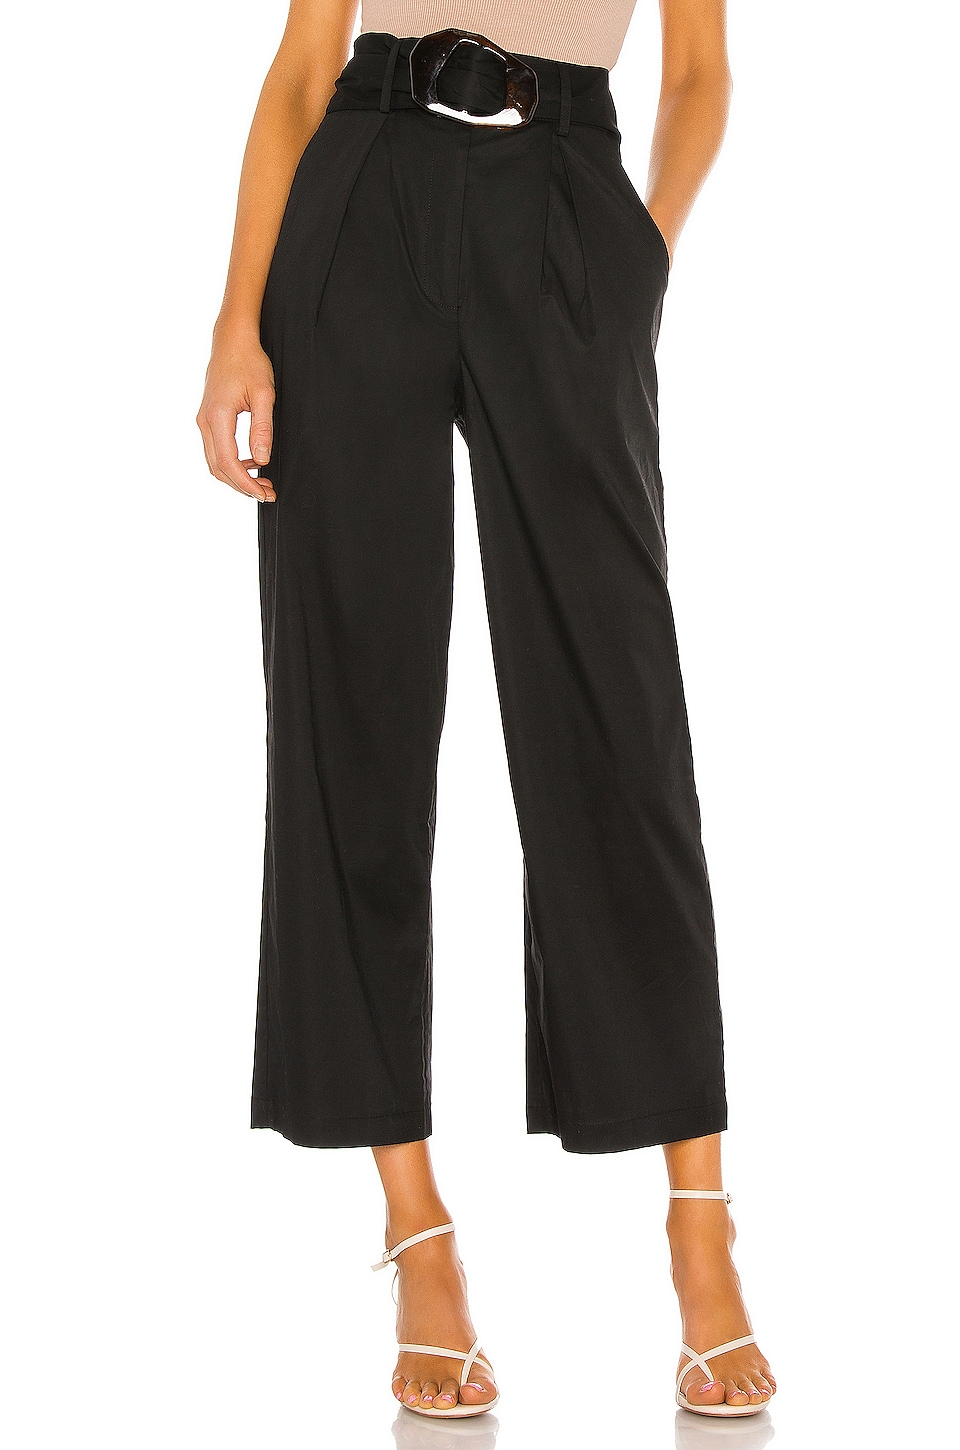 House of Harlow 1960 PANTALON KRINA